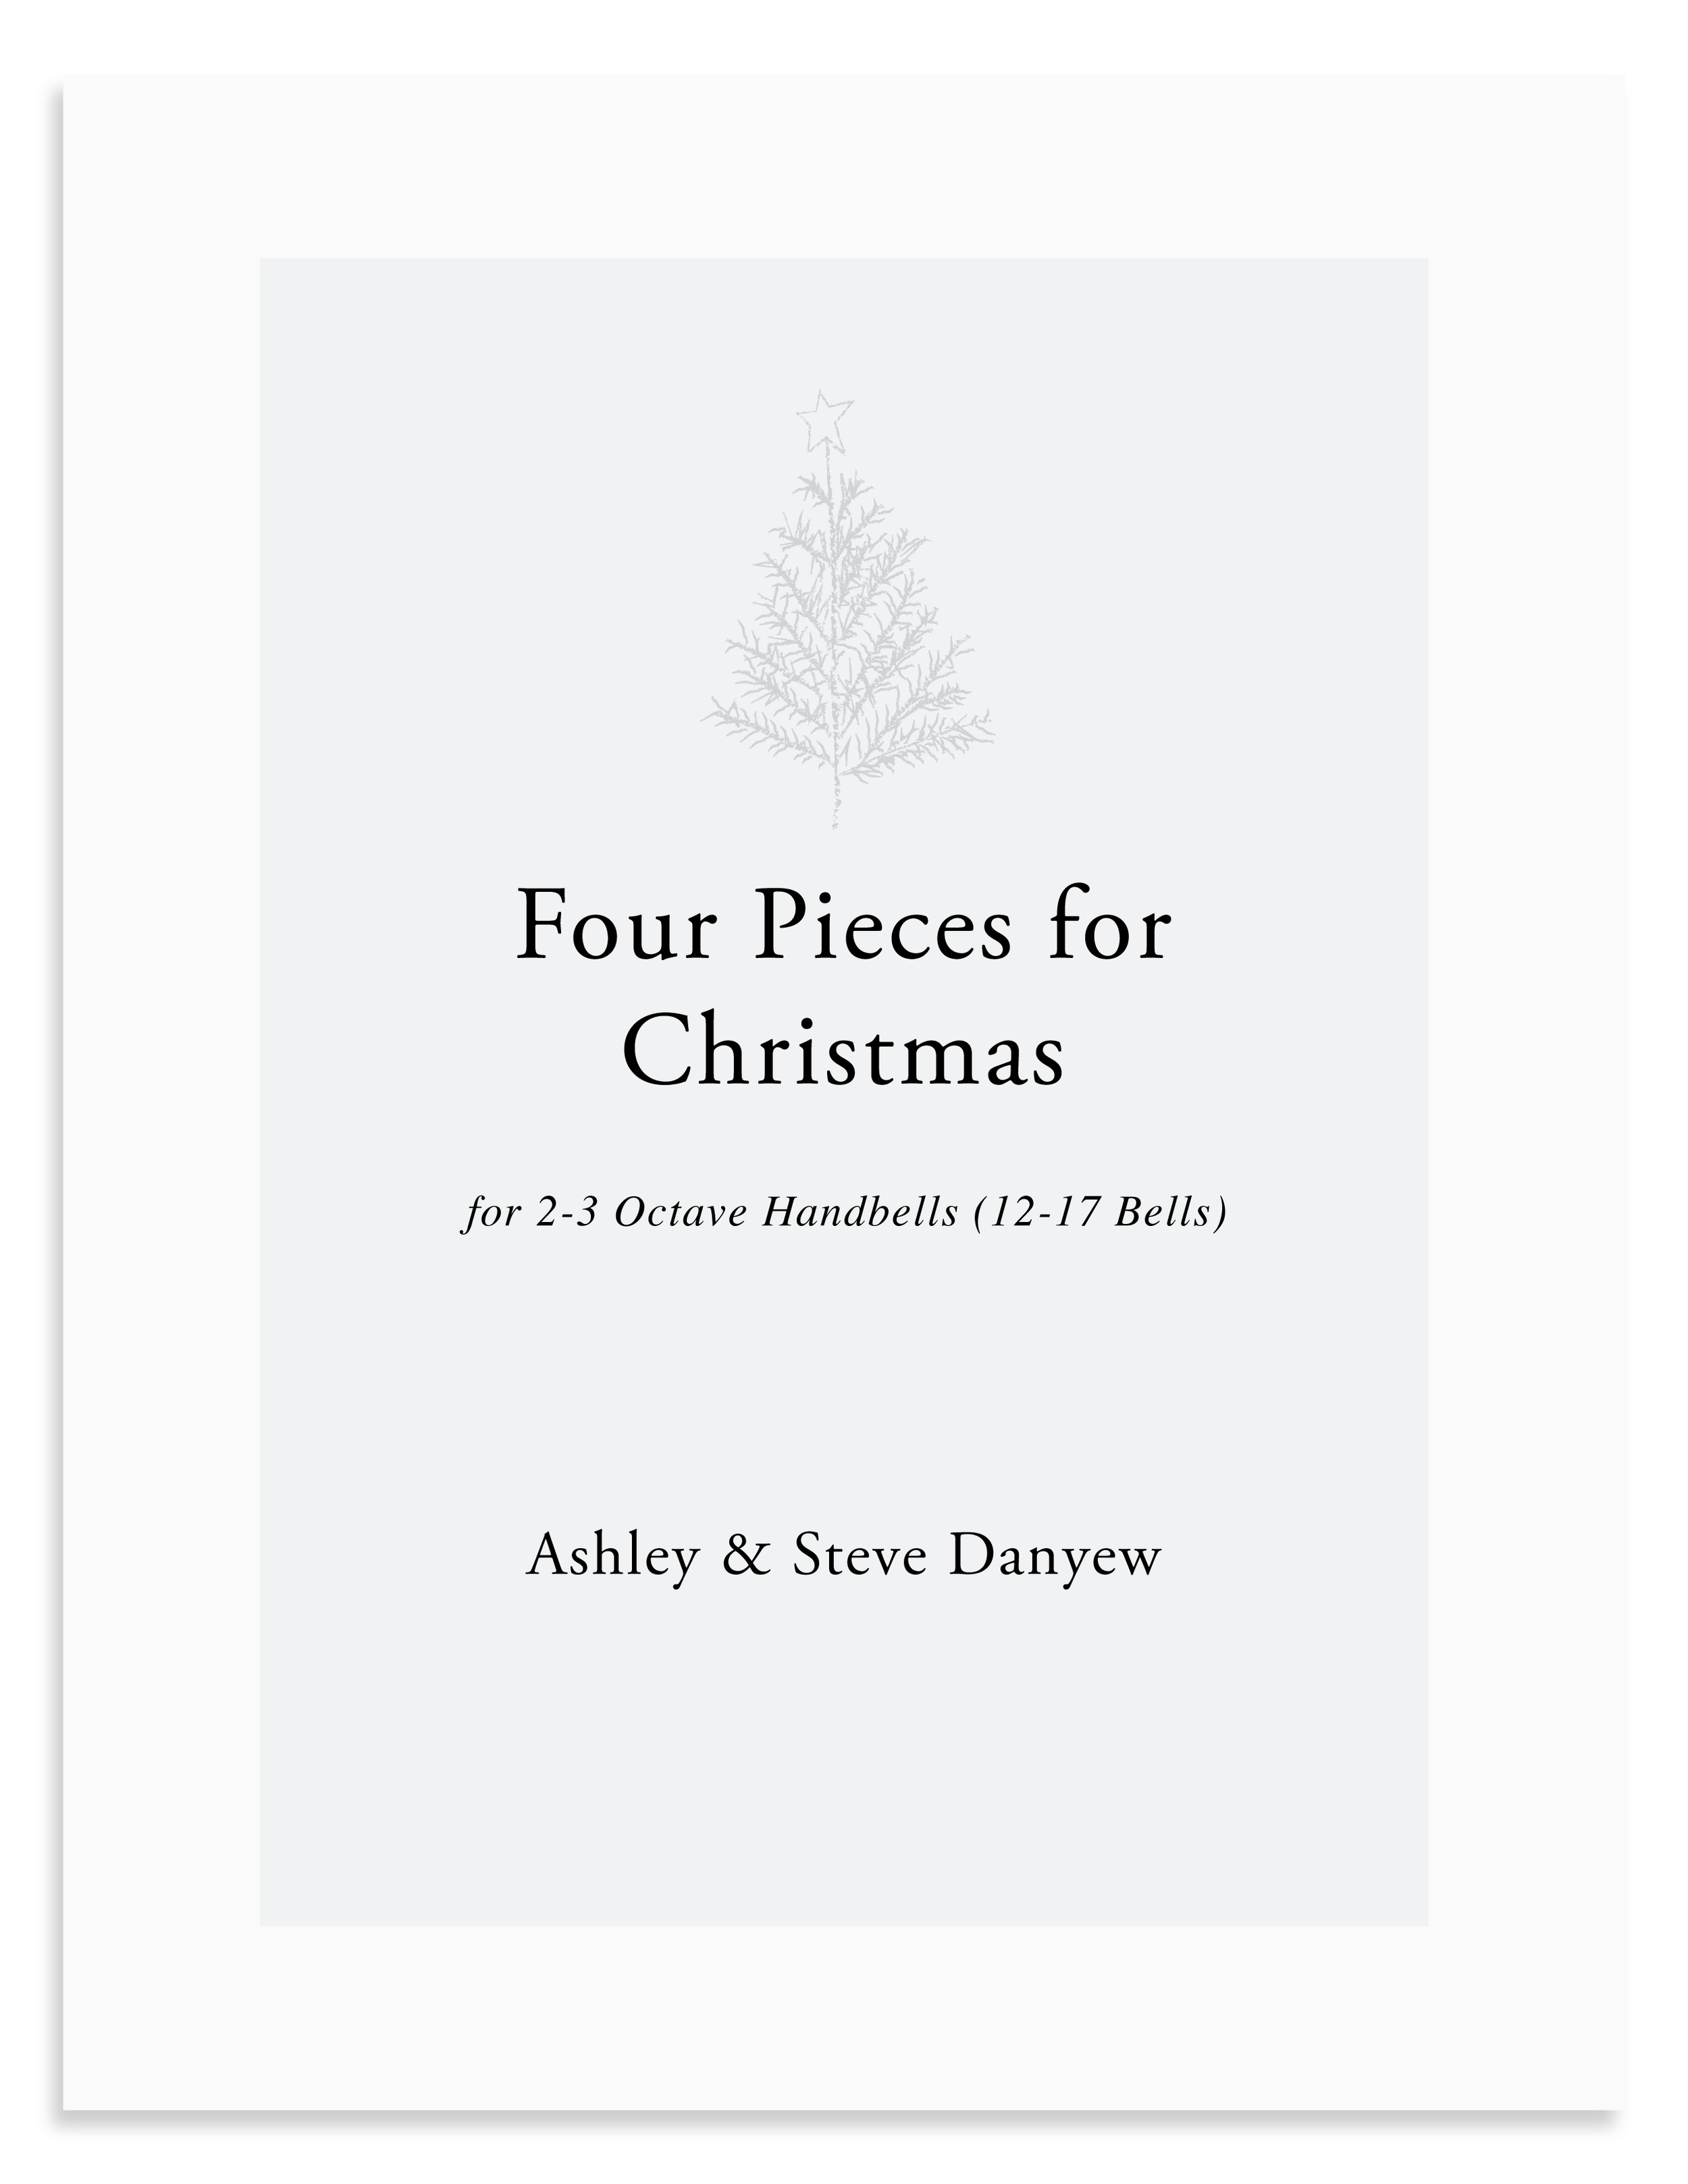 Four Pieces for Christmas: A New Handbell Collection   Ashley Danyew